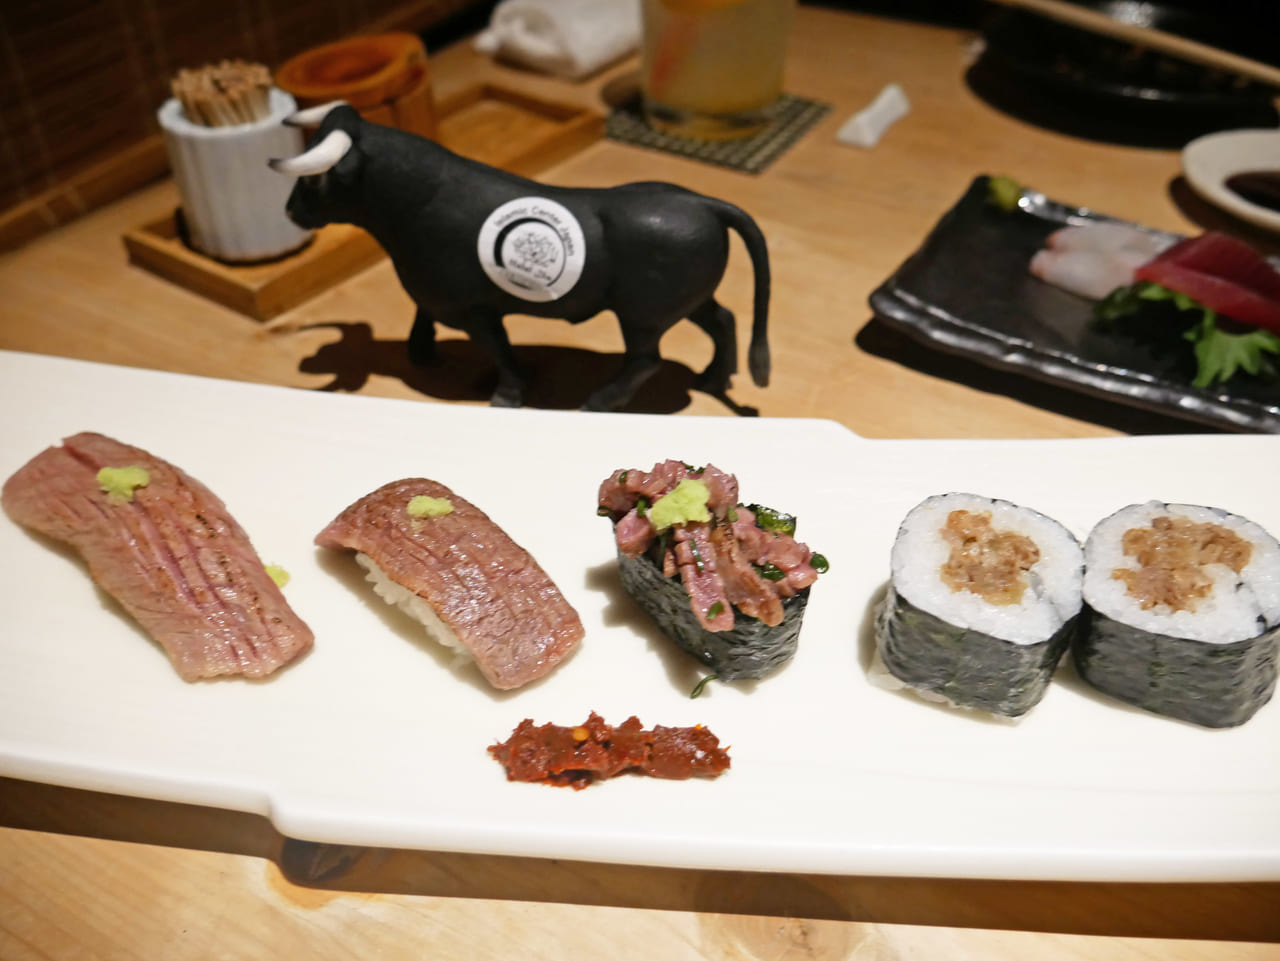 The Overwhelming Halal Ozaki Beef Menu With The Best Japanese Hospitality It S In Gonpachi Shibuya Food Diversity Today